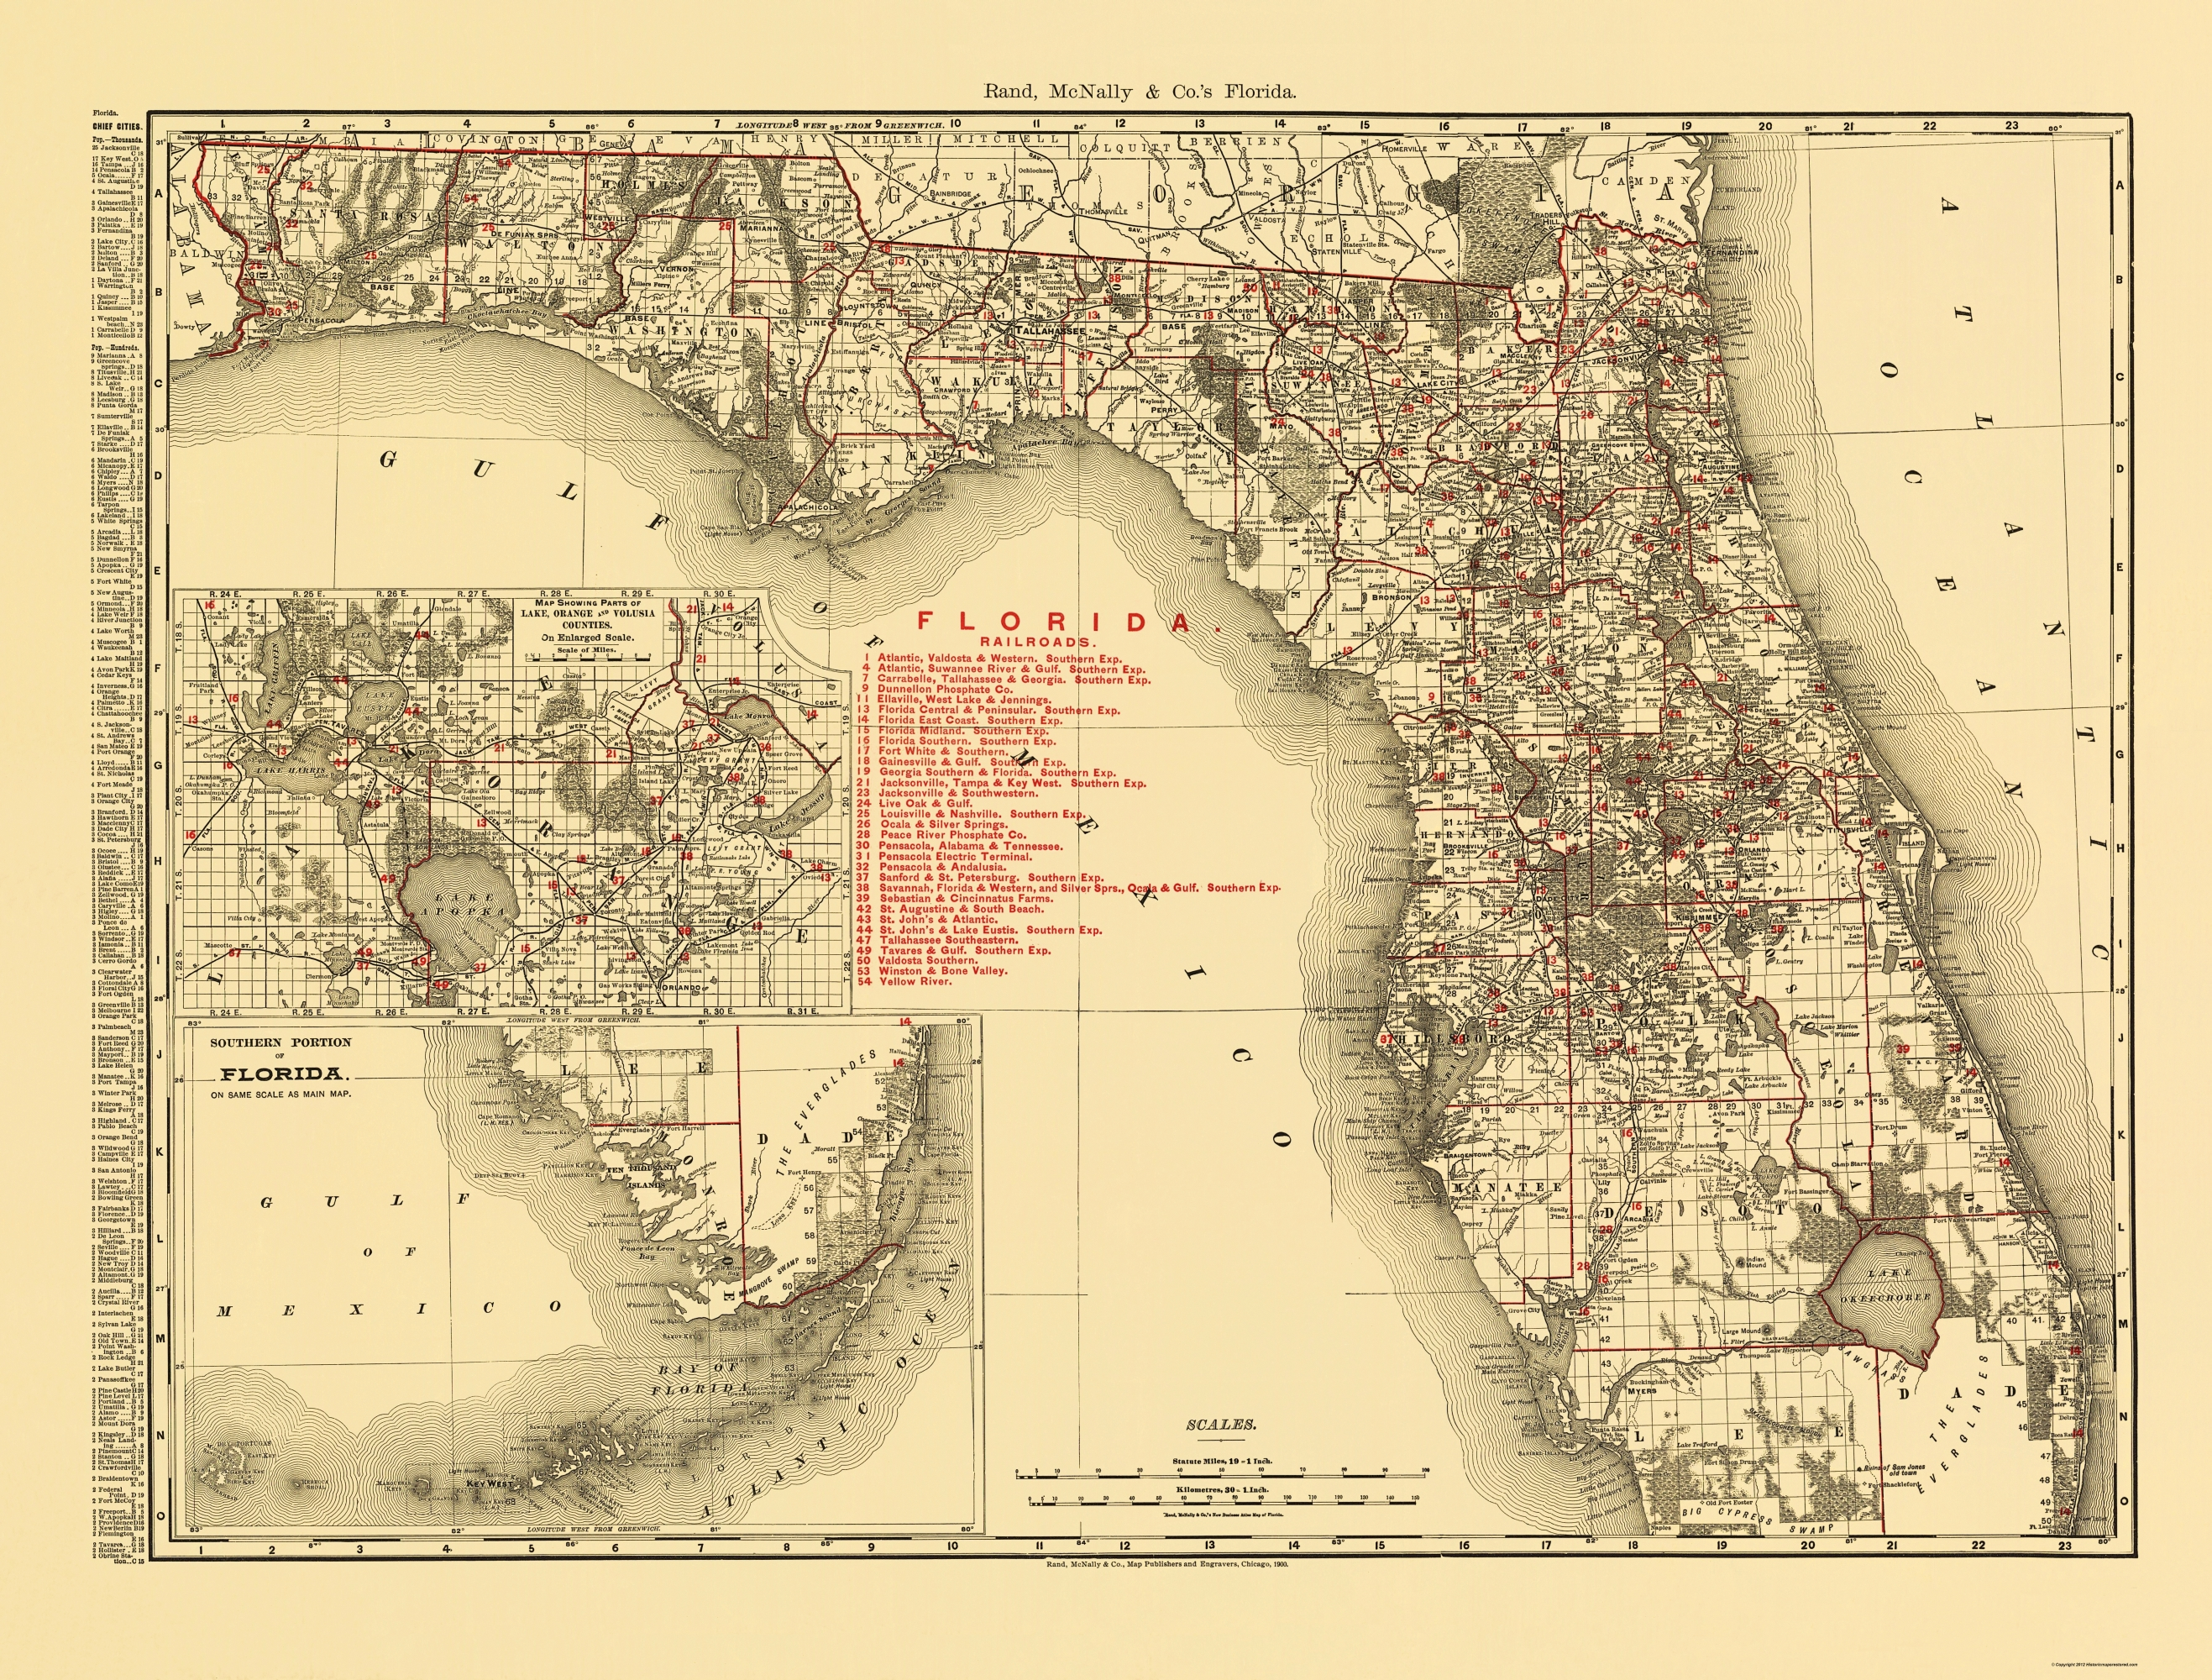 Old State Map Florida Rand Mcnally 1900